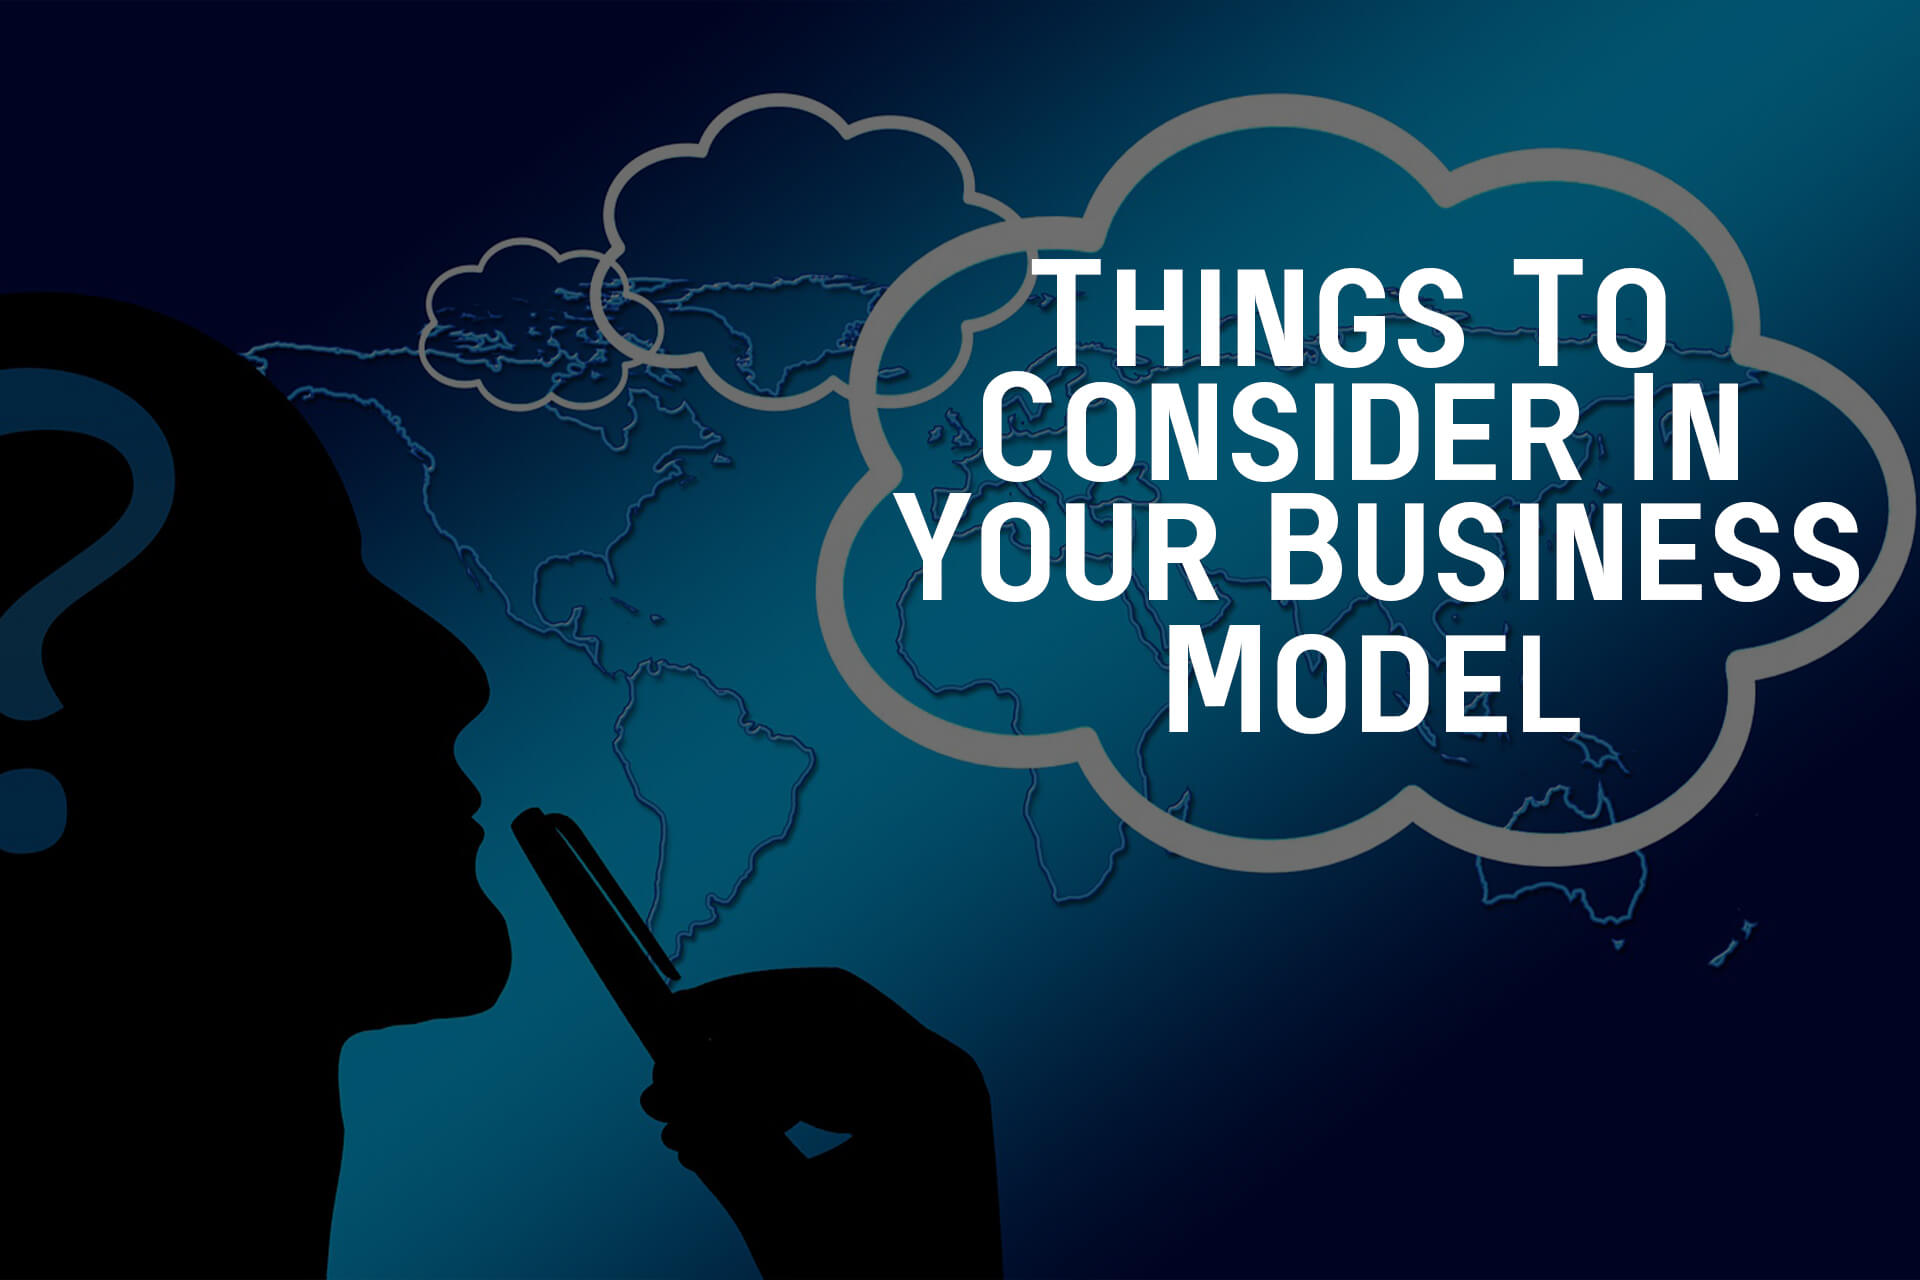 Things To Consider In Your Business Model